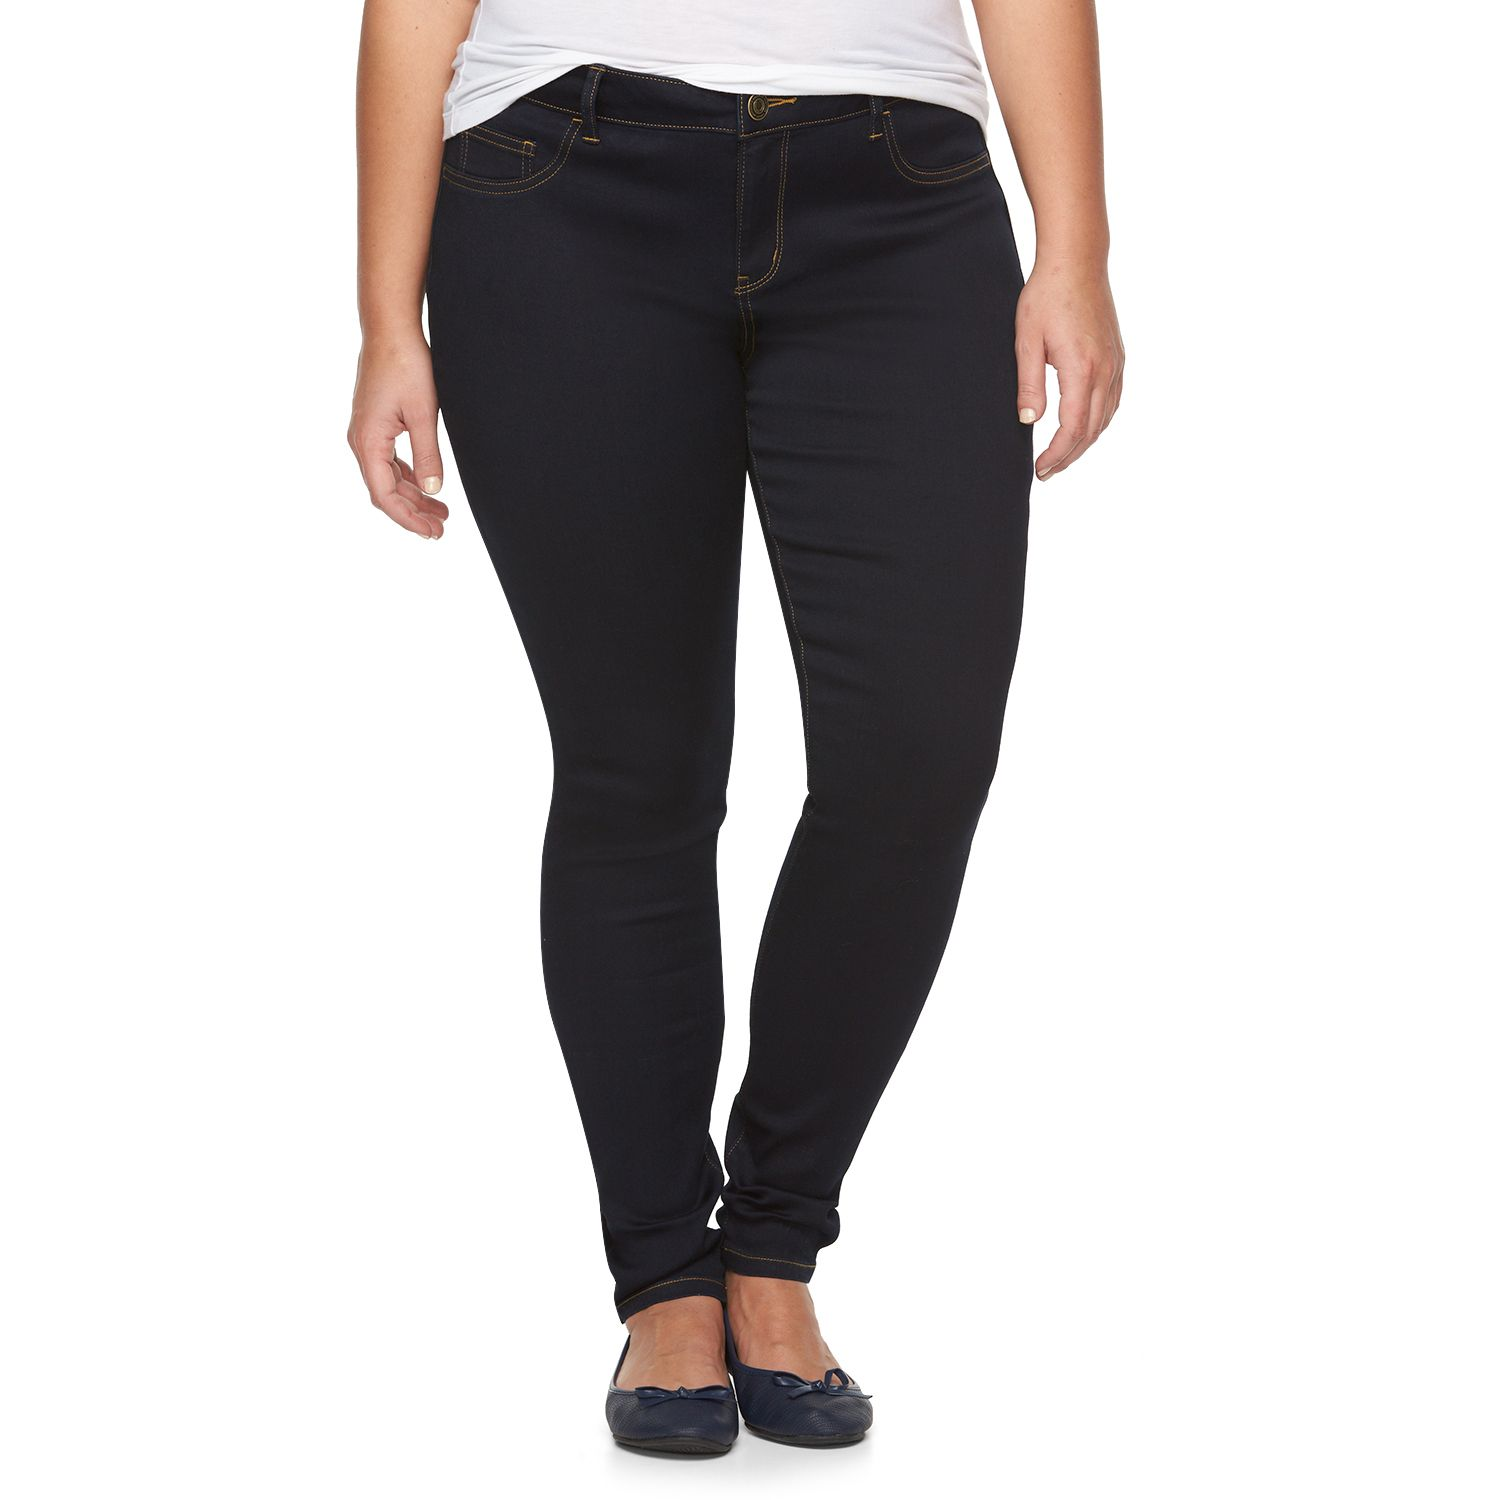 Juniors Plus Size SO? Embroidered Denim Jeggings